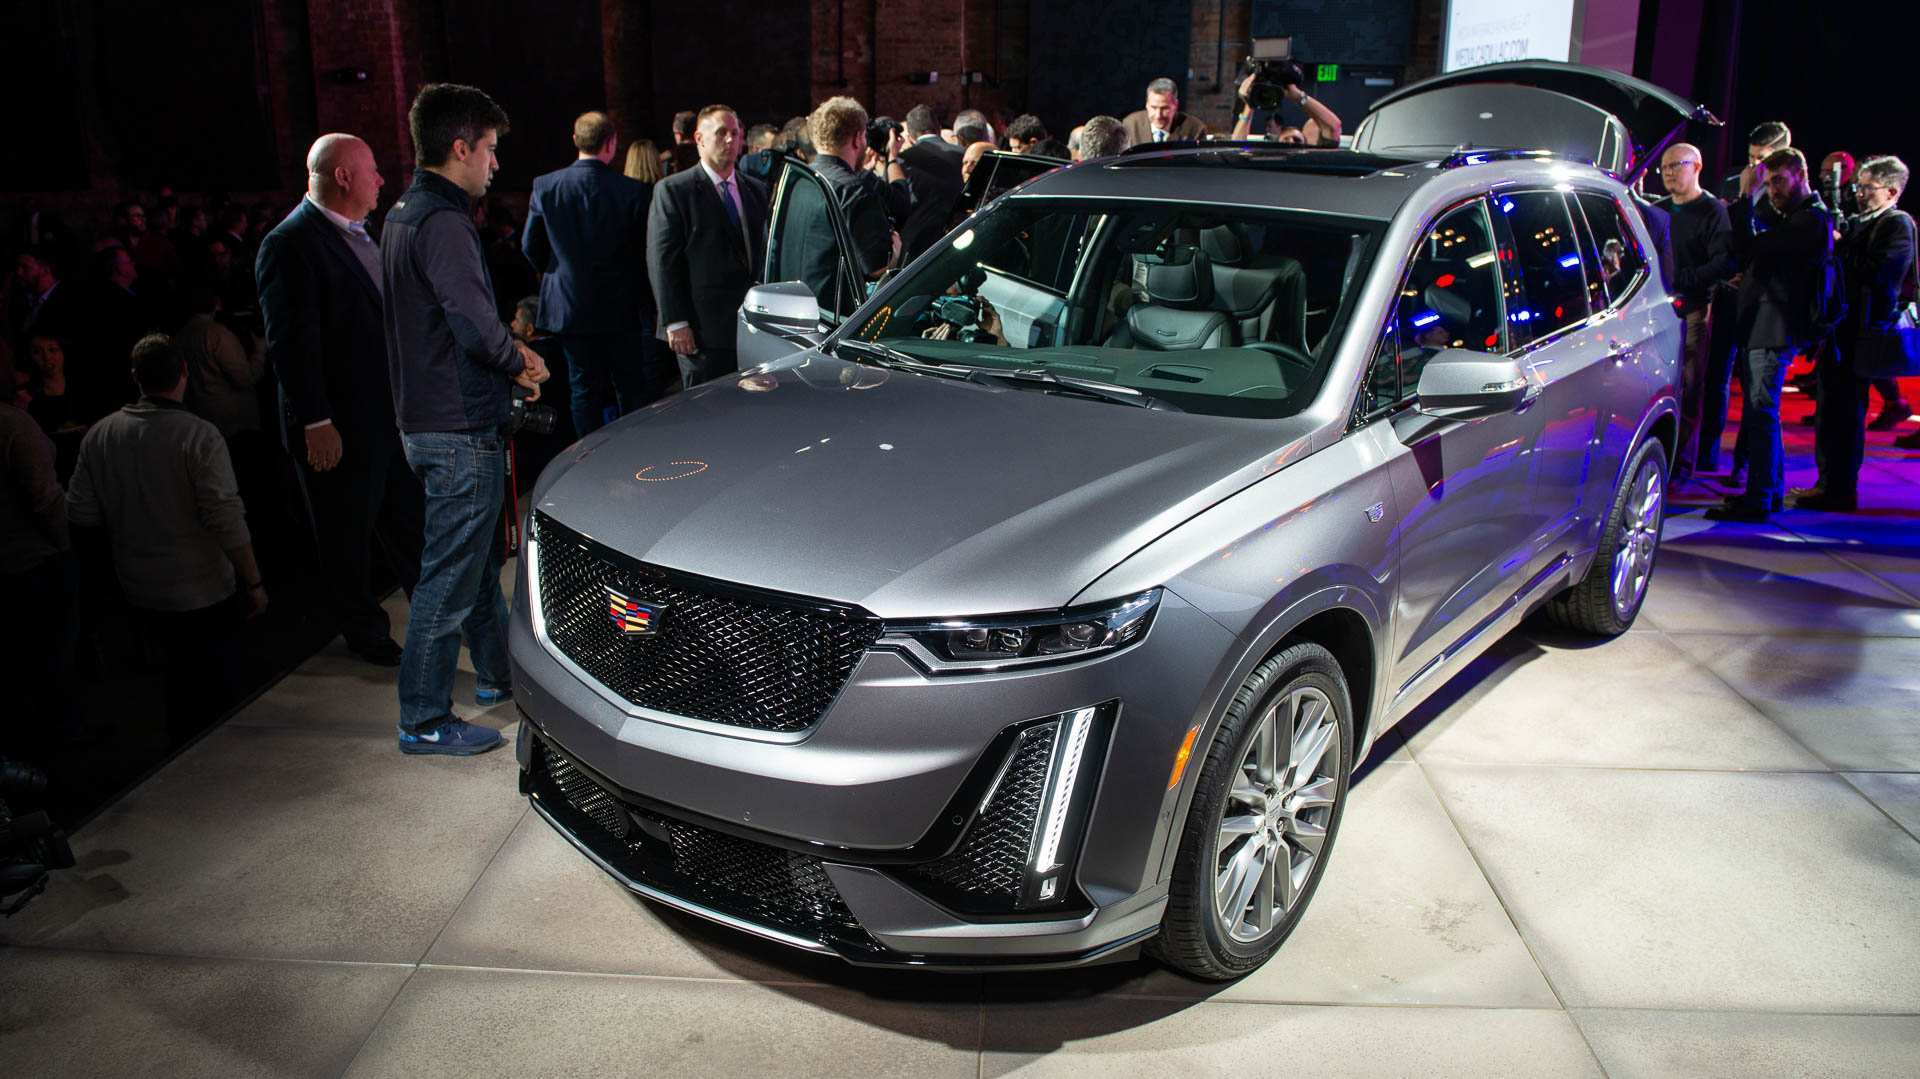 28 New Cadillac Electric Car 2020 Images